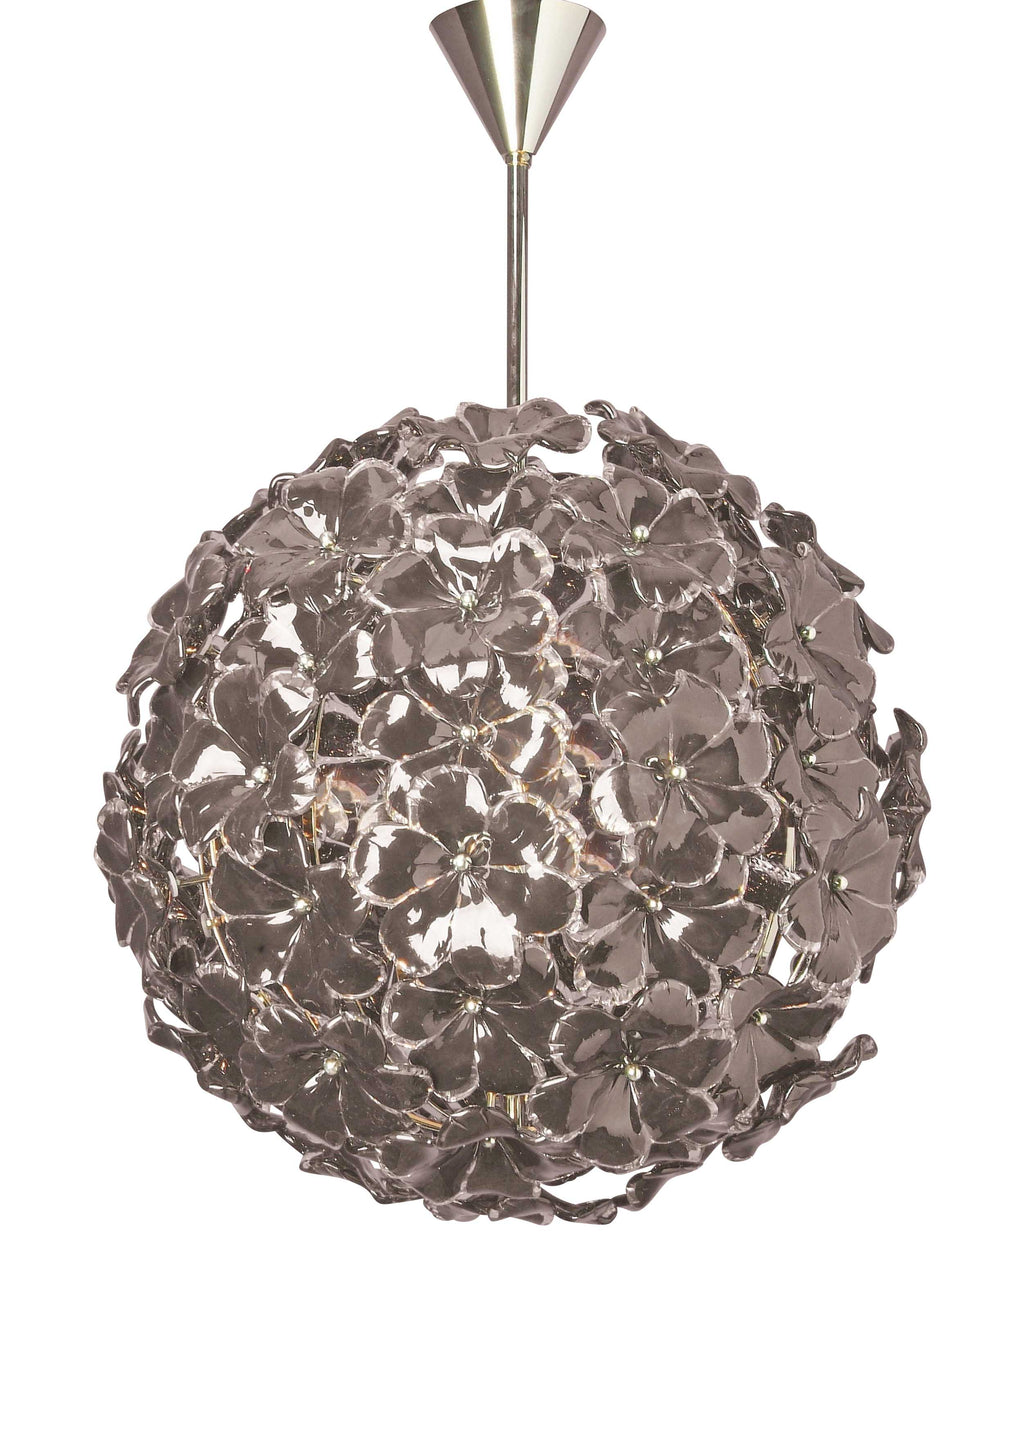 Kew Flower Ceiling Light Black Glass - David Malik & Son